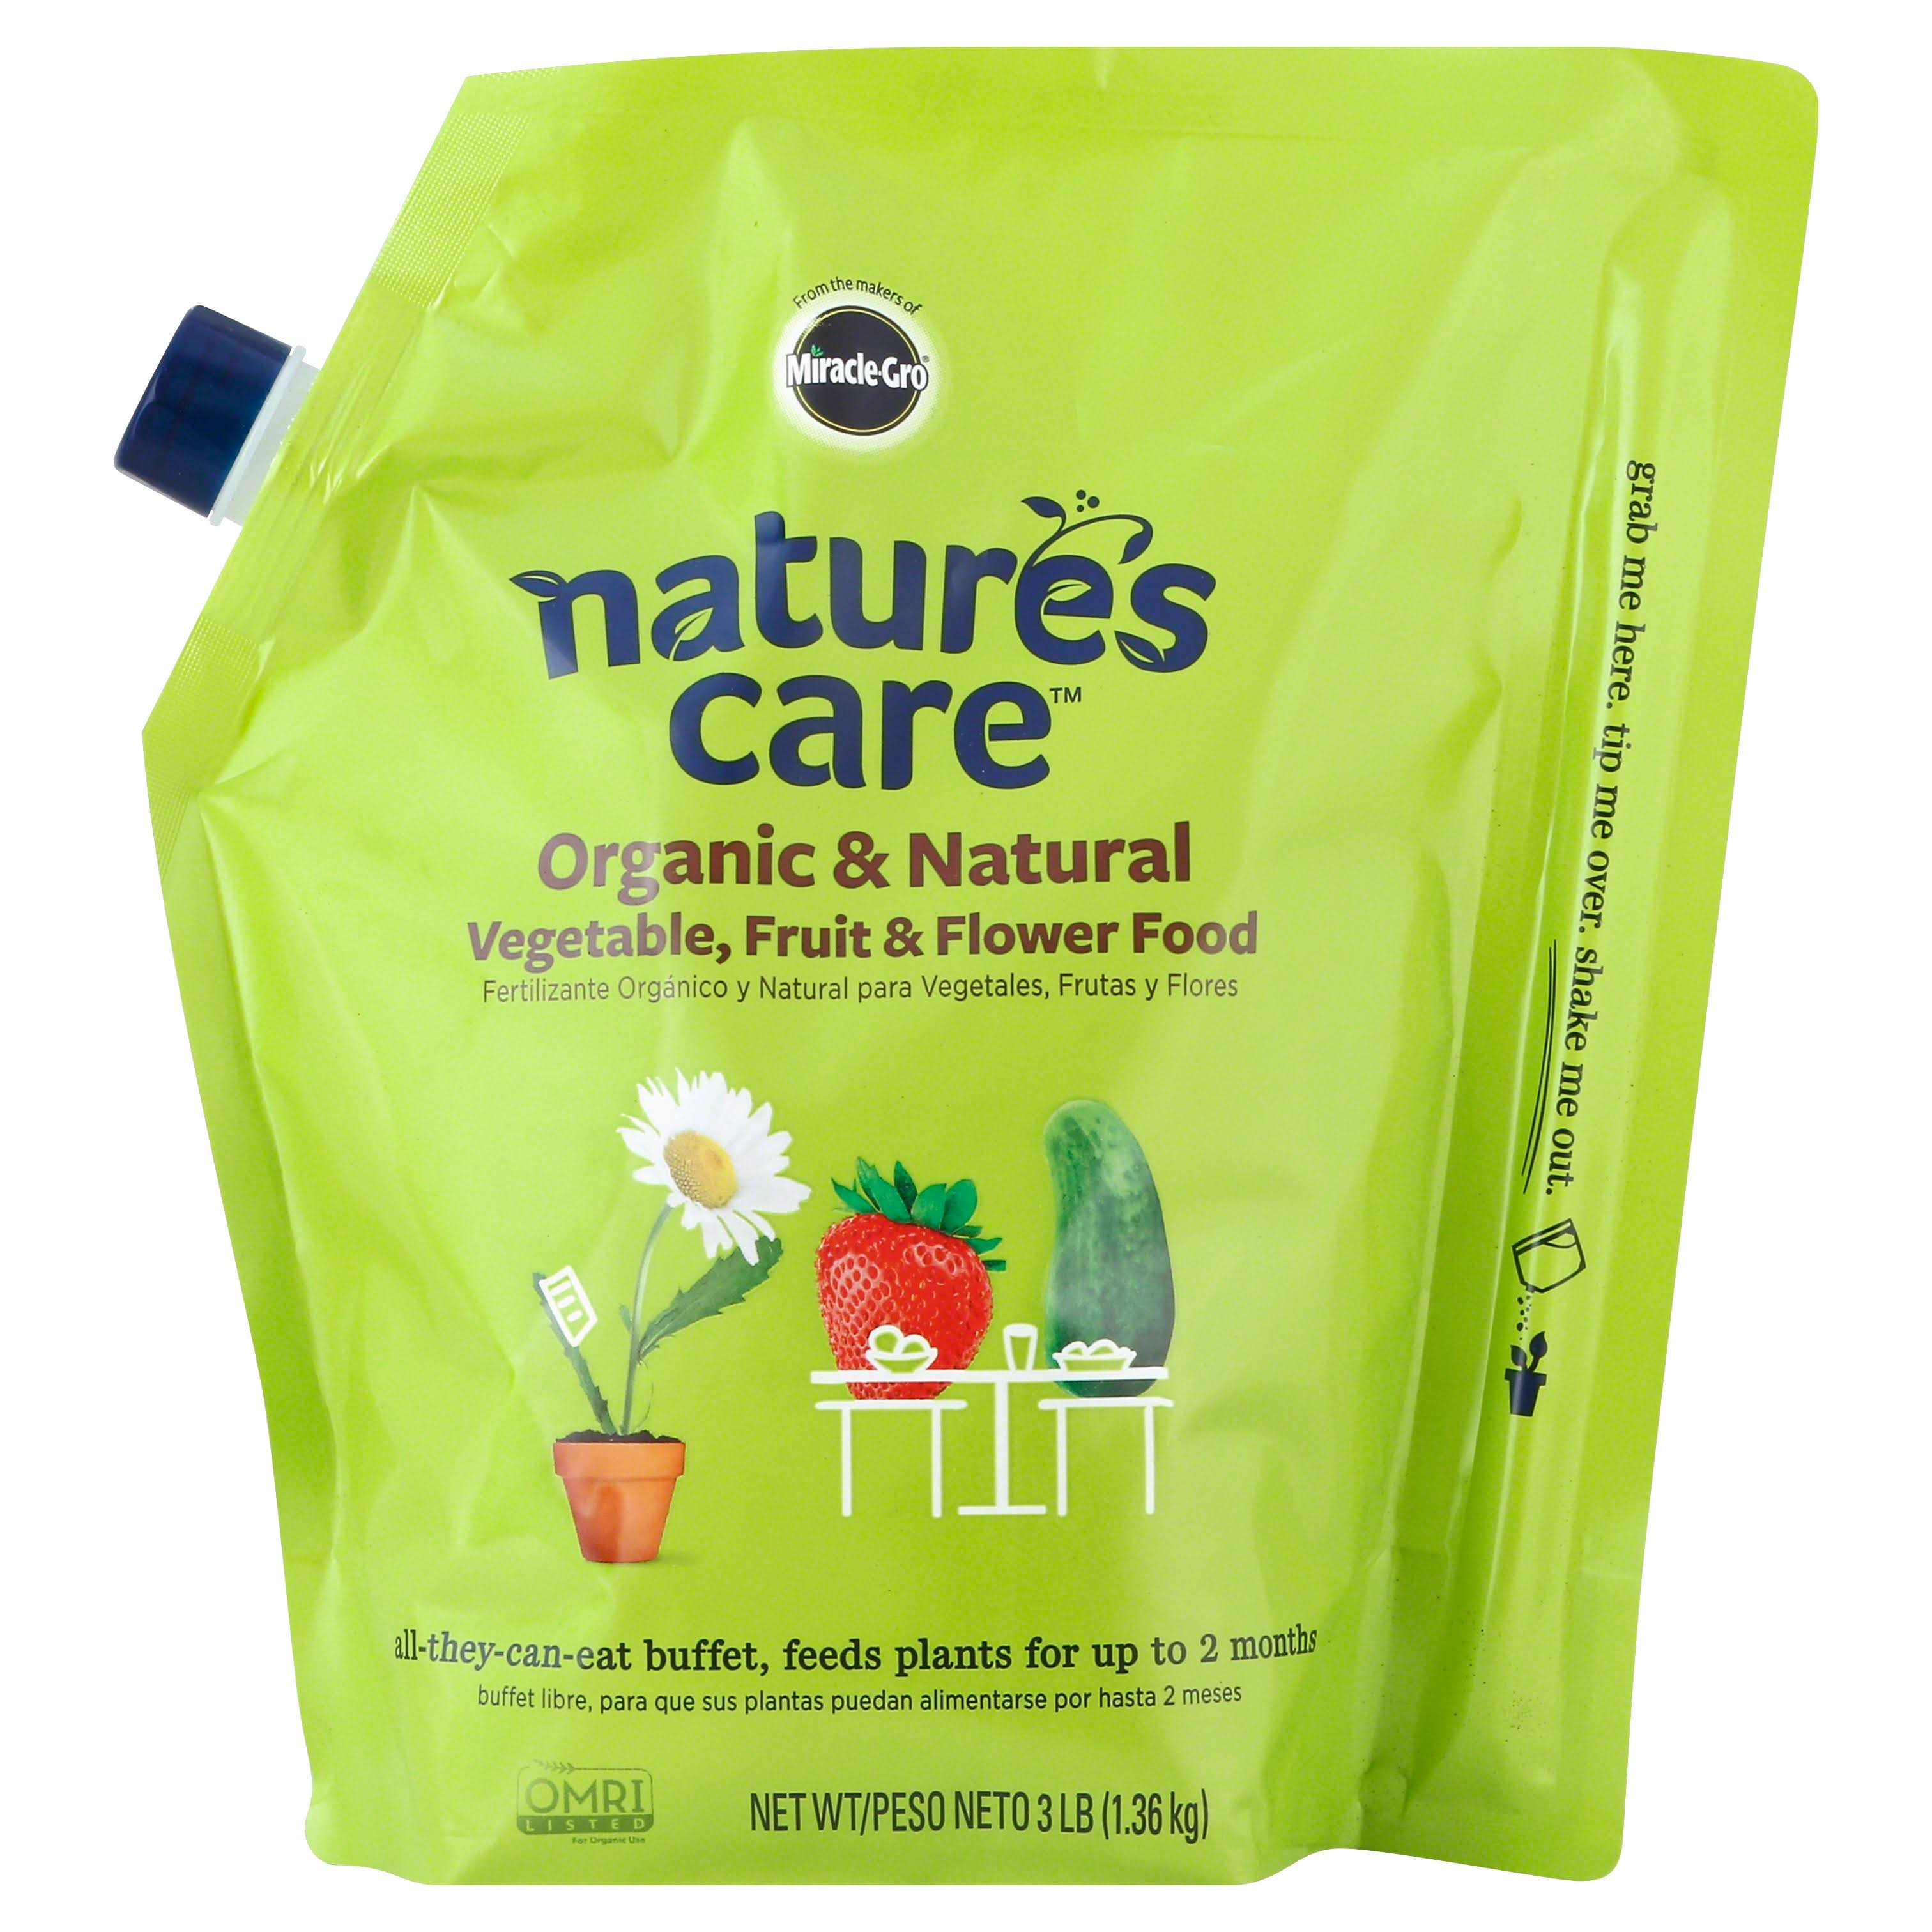 Miracle Gro Nature's Care Vegetable, Fruit & Flower Food, Organic & Natural - 3 lb